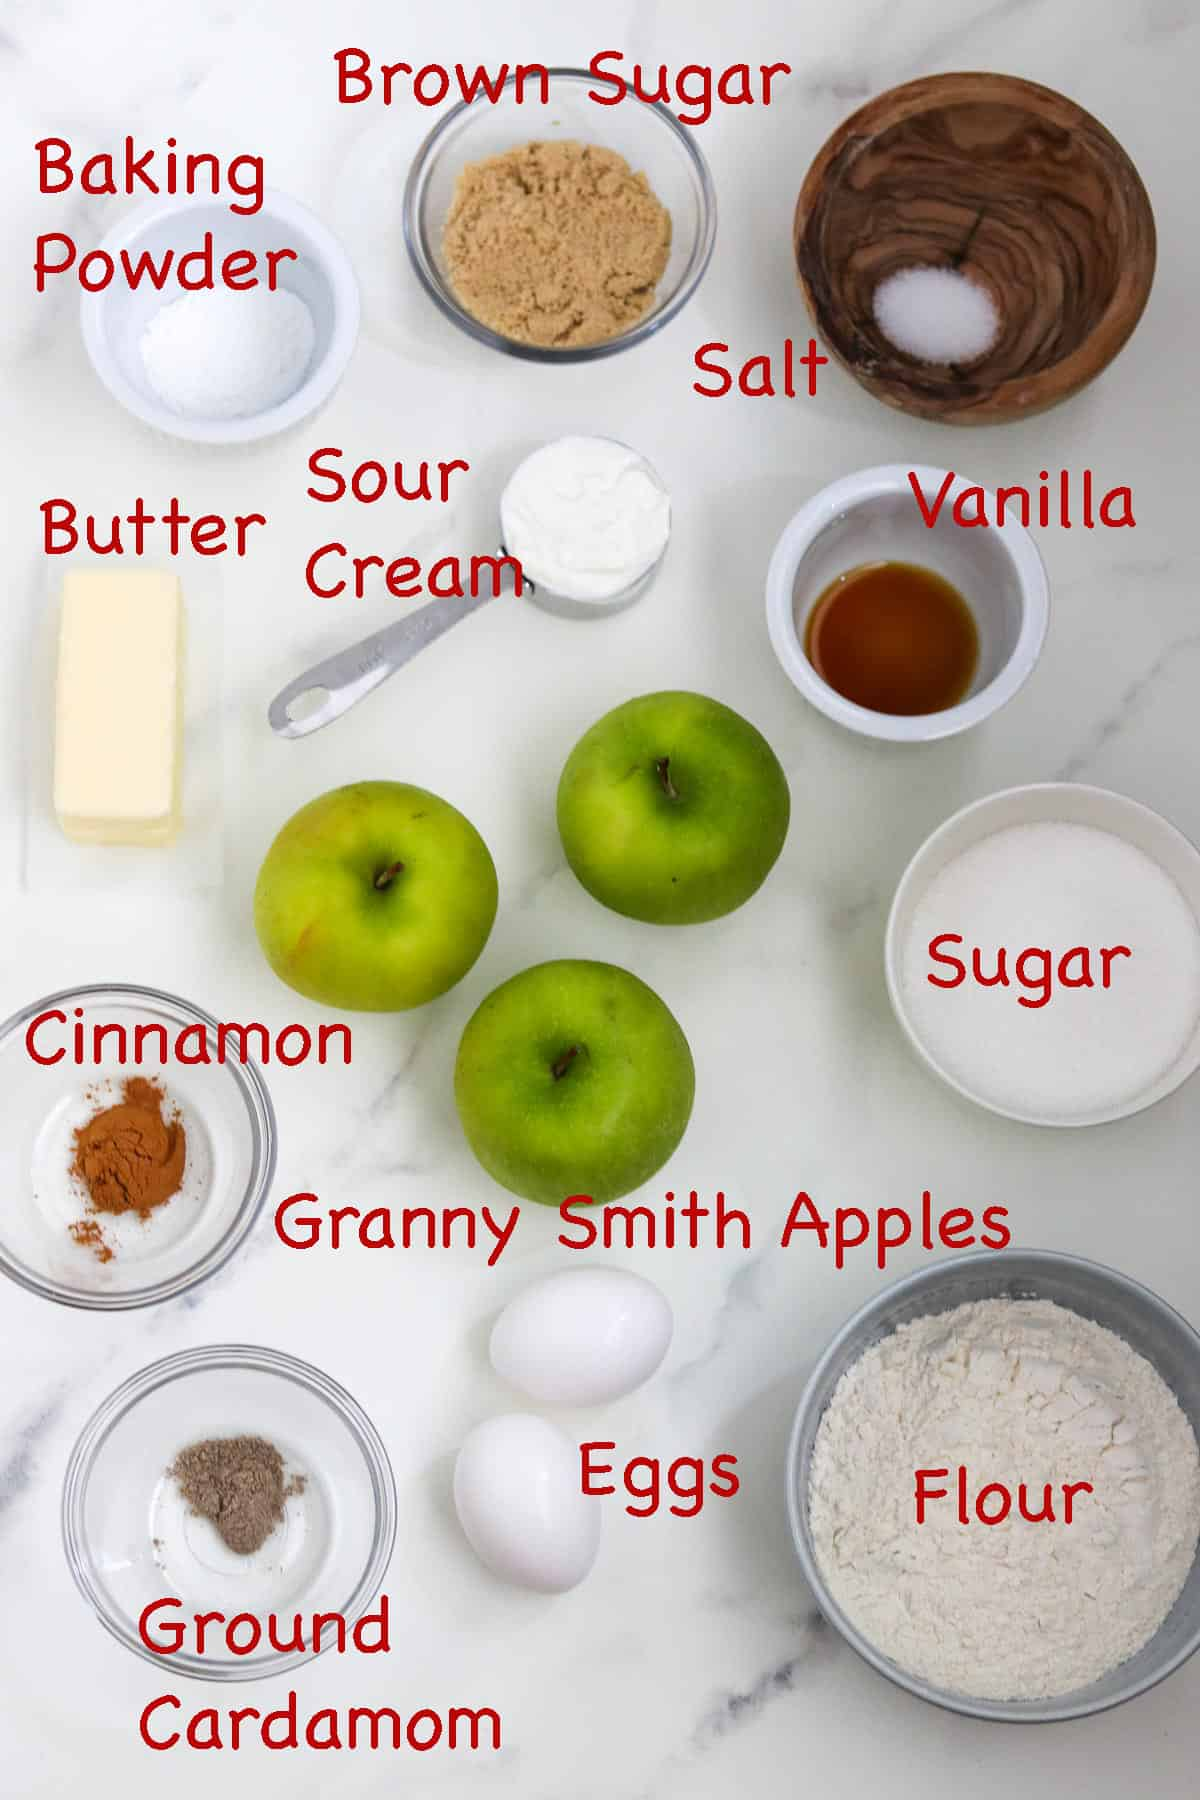 Labeled ingredients for Swedish Apple Cake.